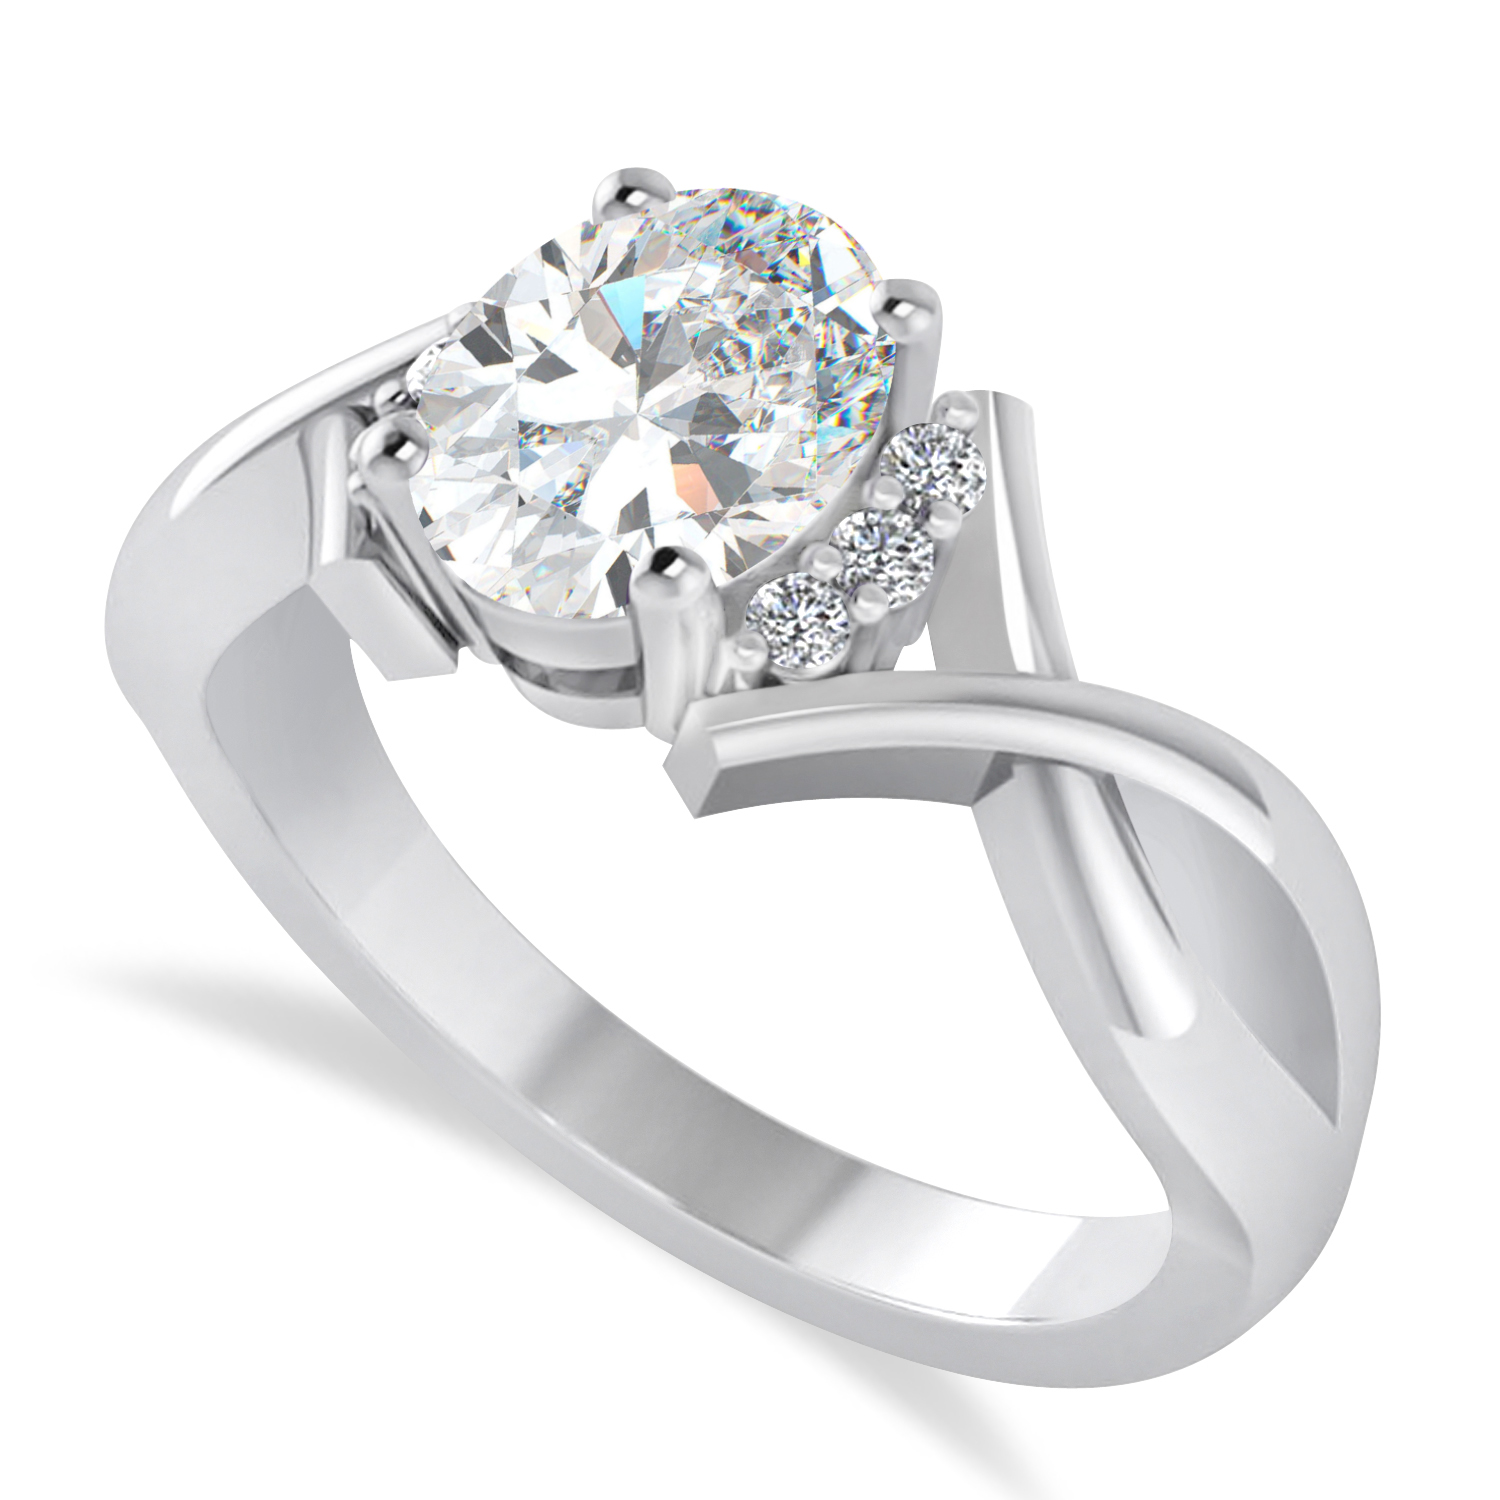 Oval Cut Diamond Engagement Ring With Split Shank 14k White Gold (1.59 ct)